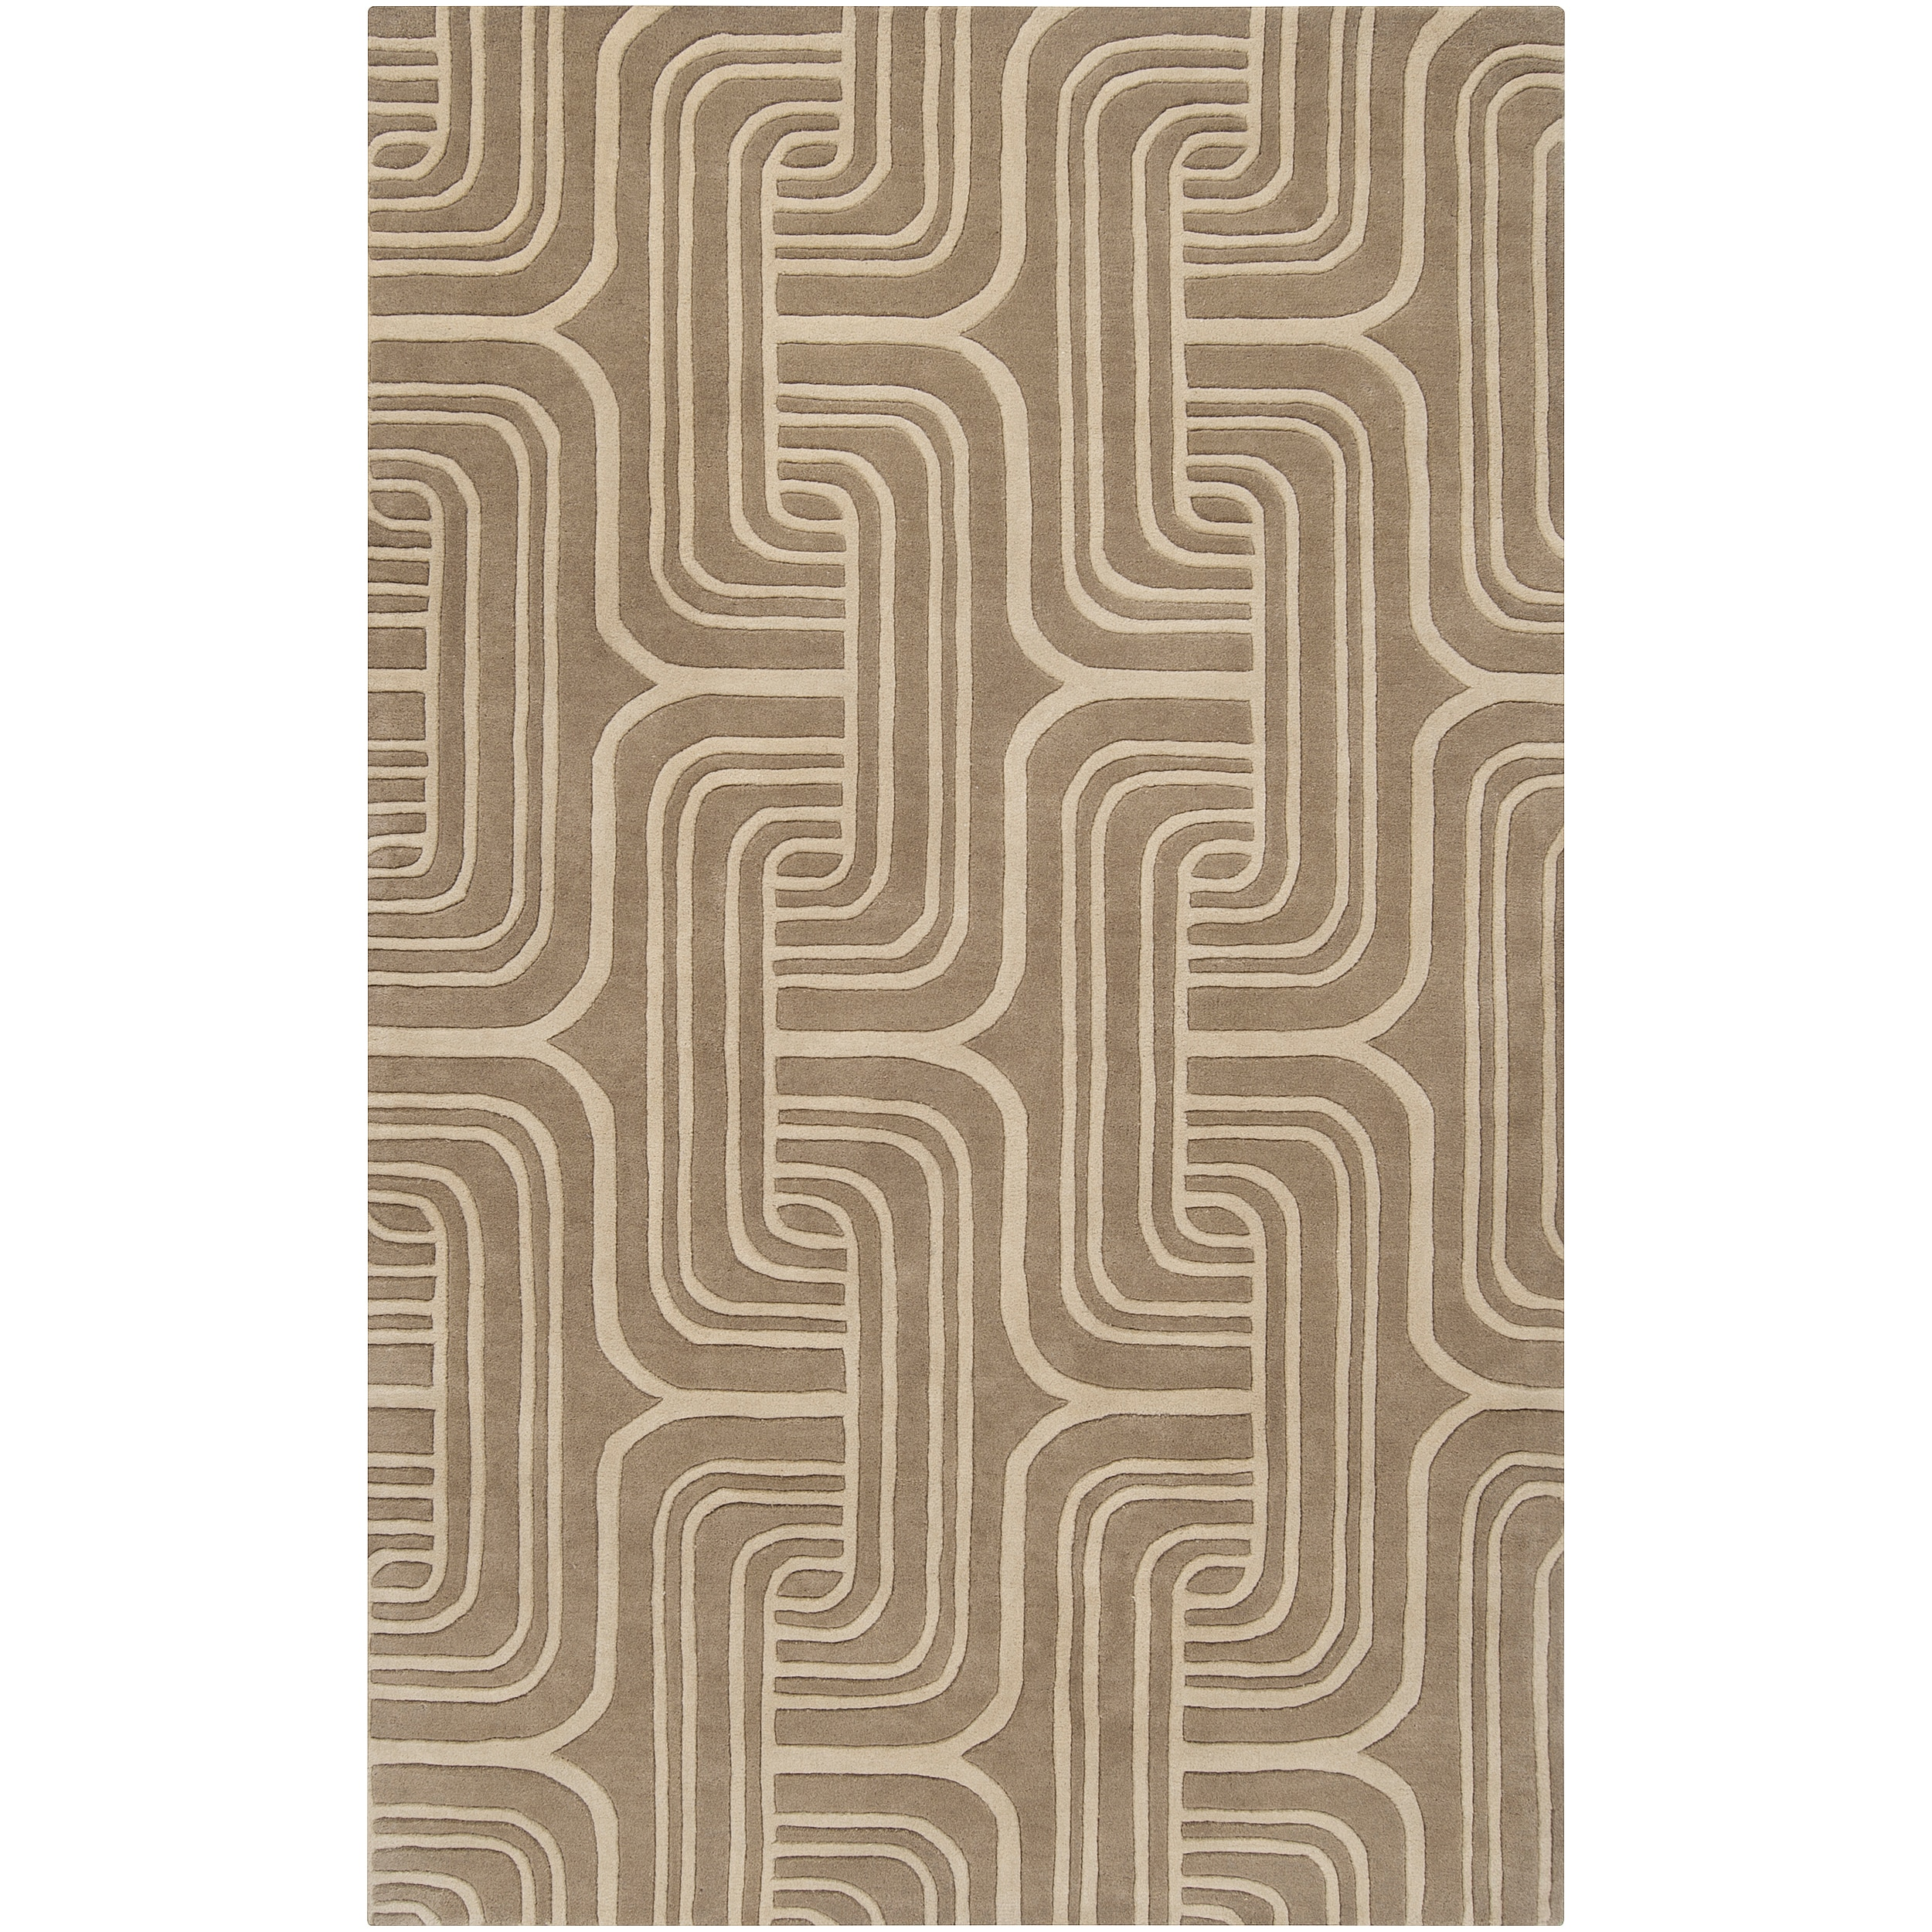 Hand-tufted Beige Contemporary Swirl Oasis Wool Abstract Rug (5' x 8')